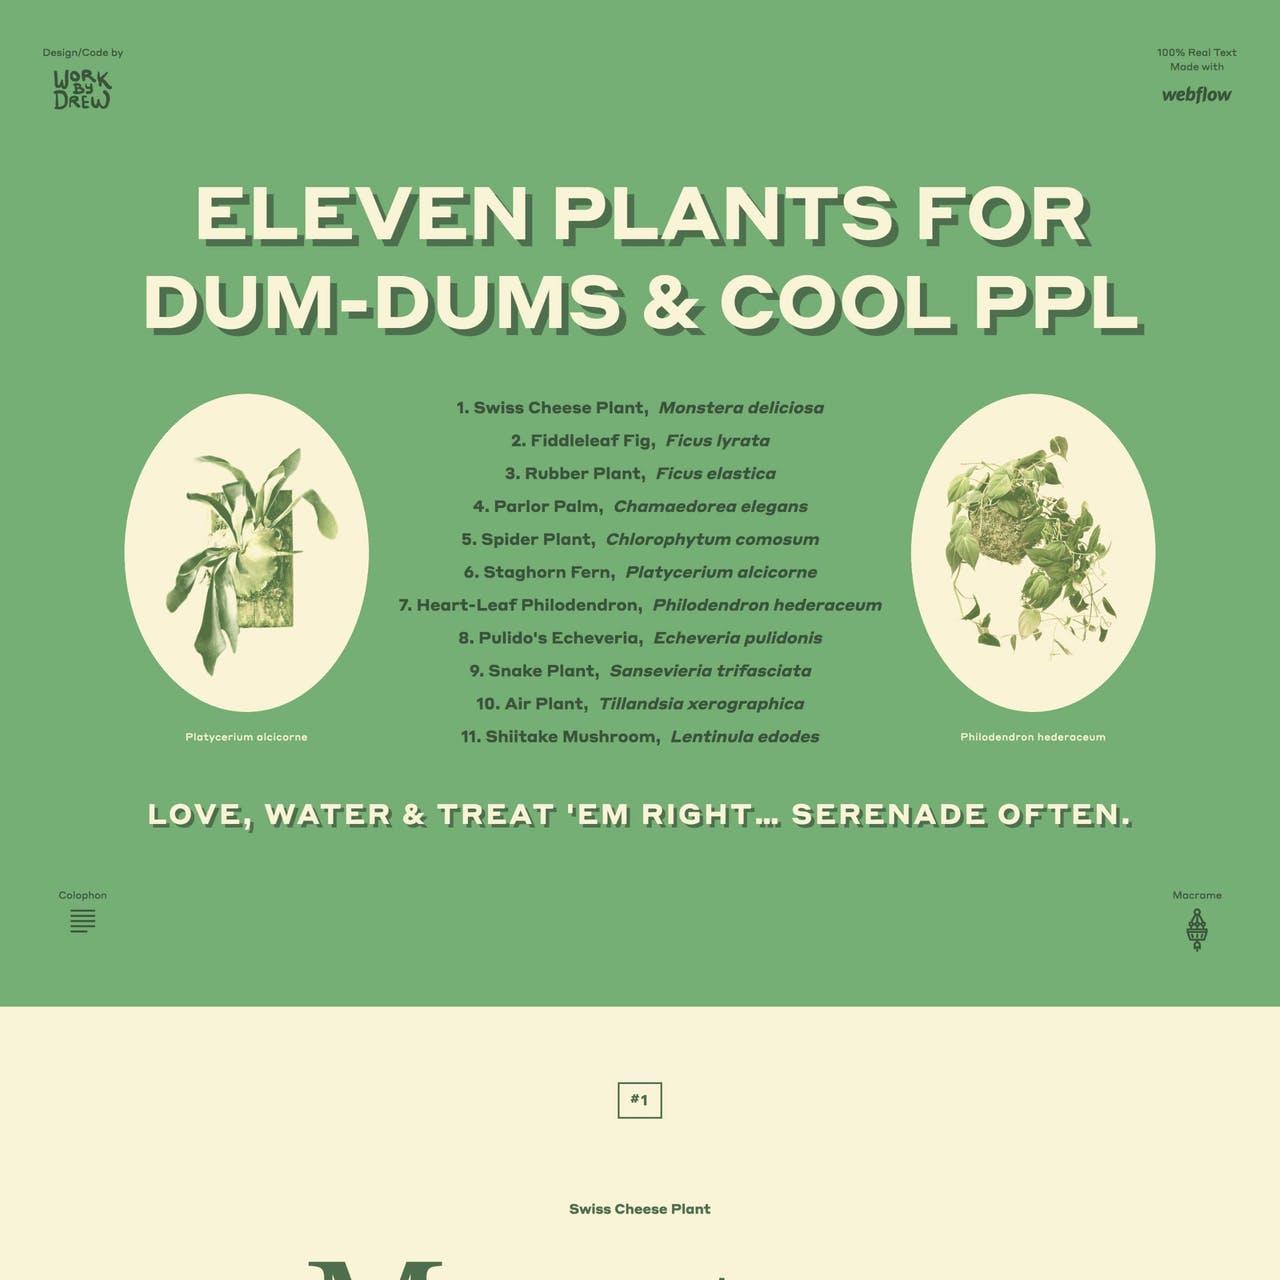 Eleven Plants for Dum-Dums & Cool Ppl Website Screenshot